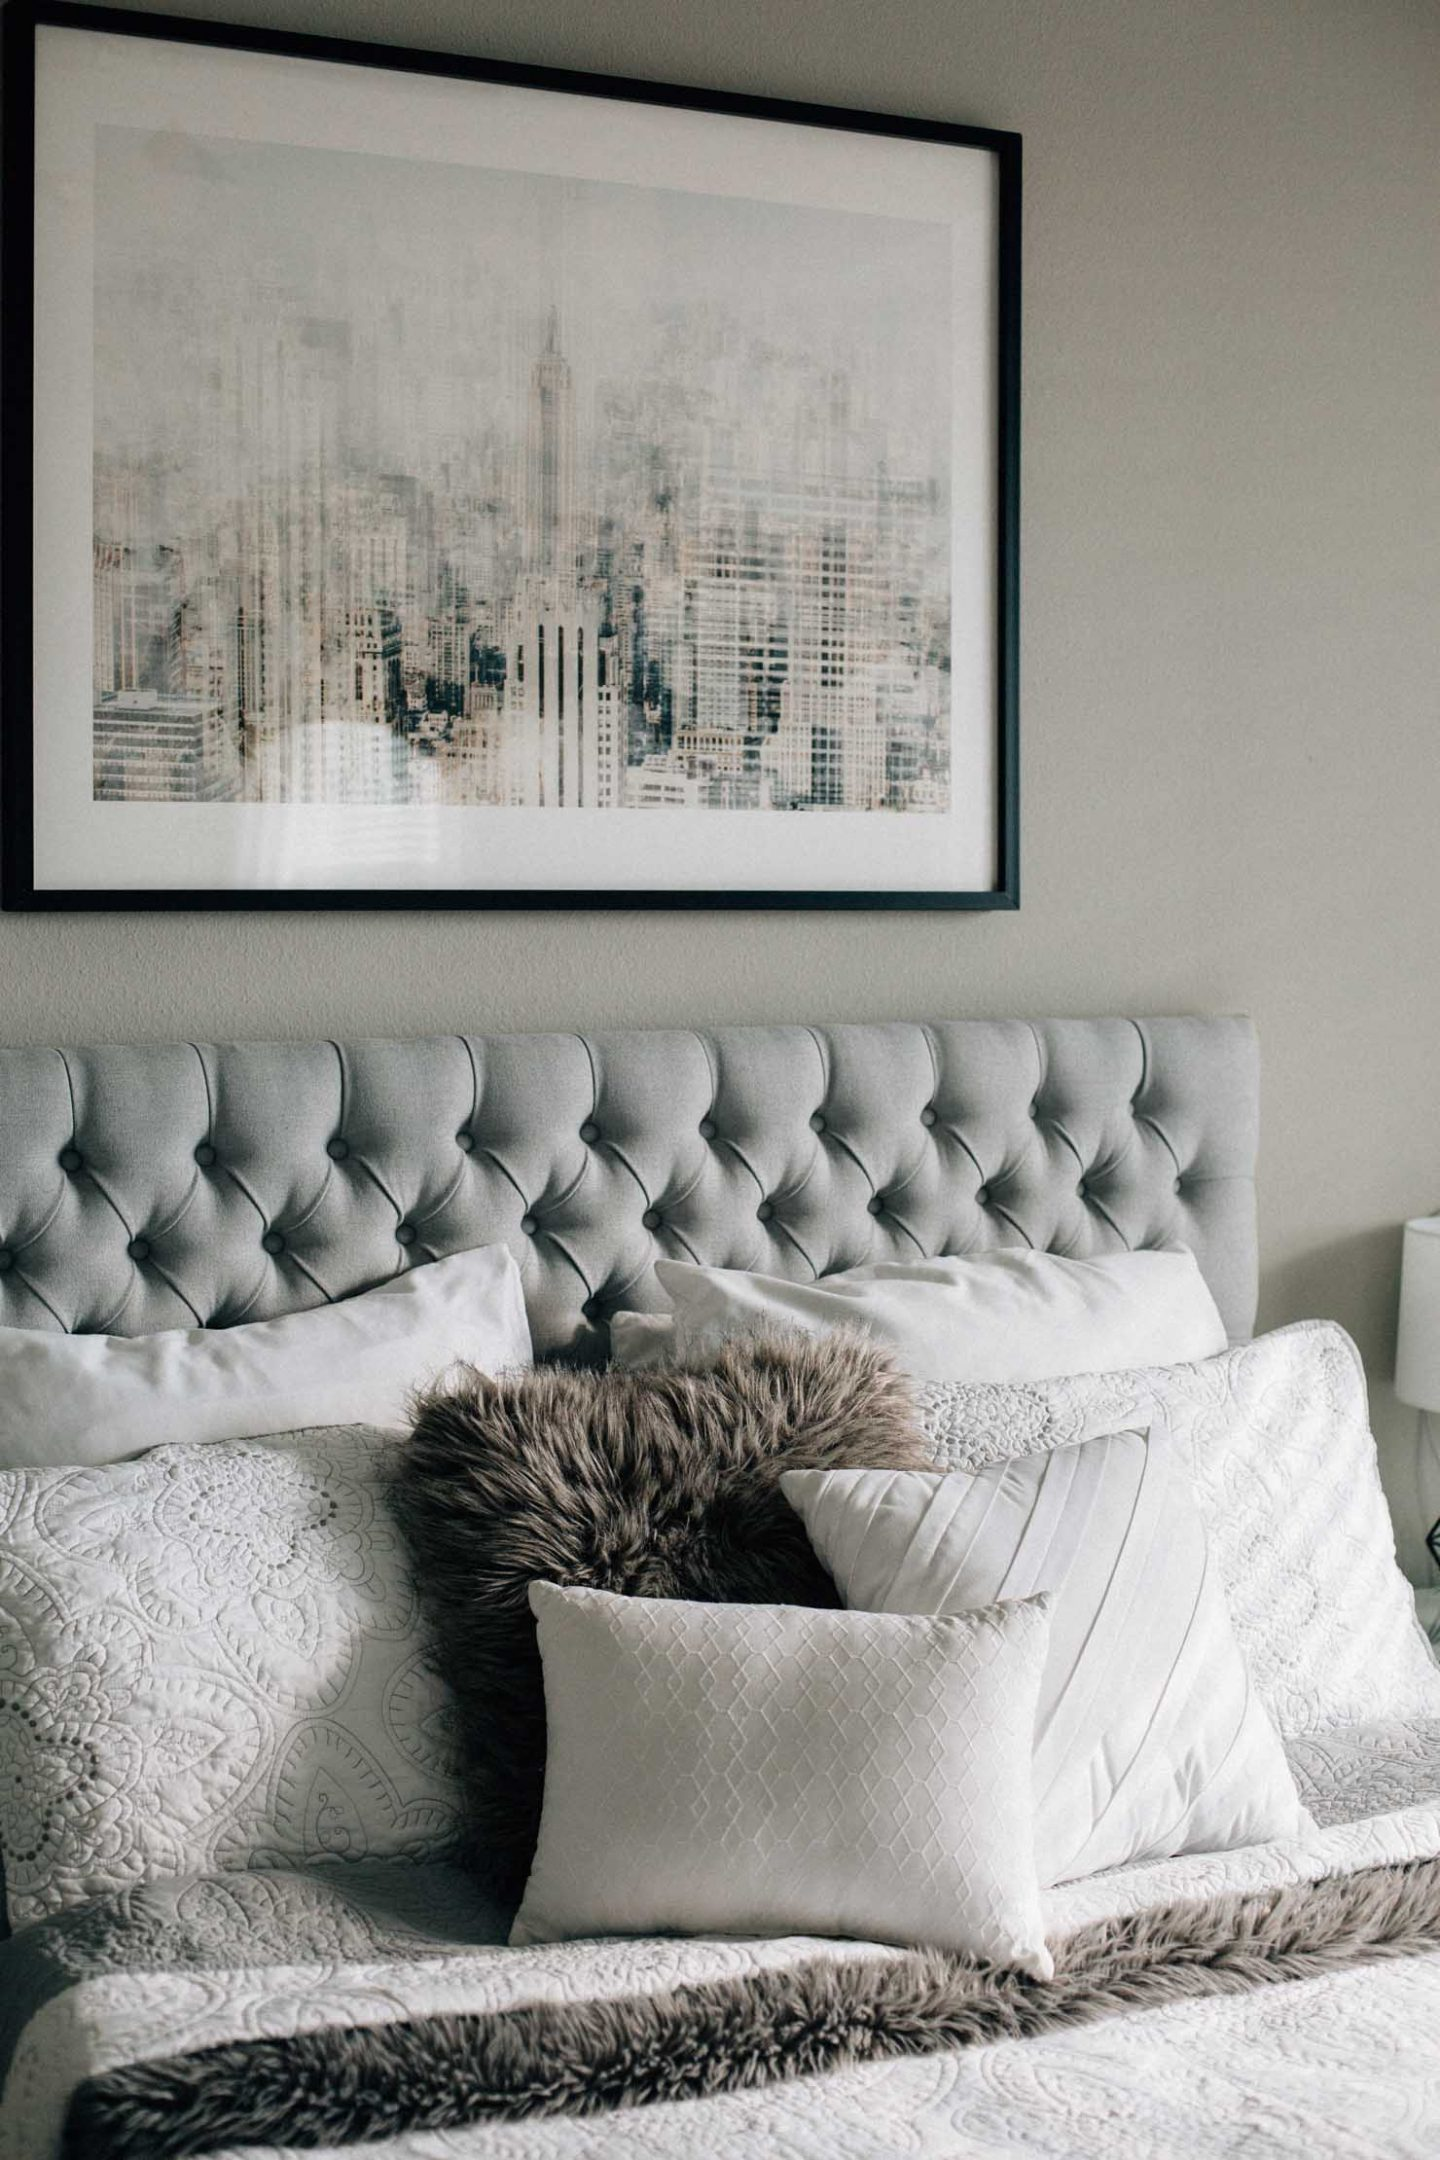 Lifestyle blogger Lilly Beltran's master bedroom reveal with Minted